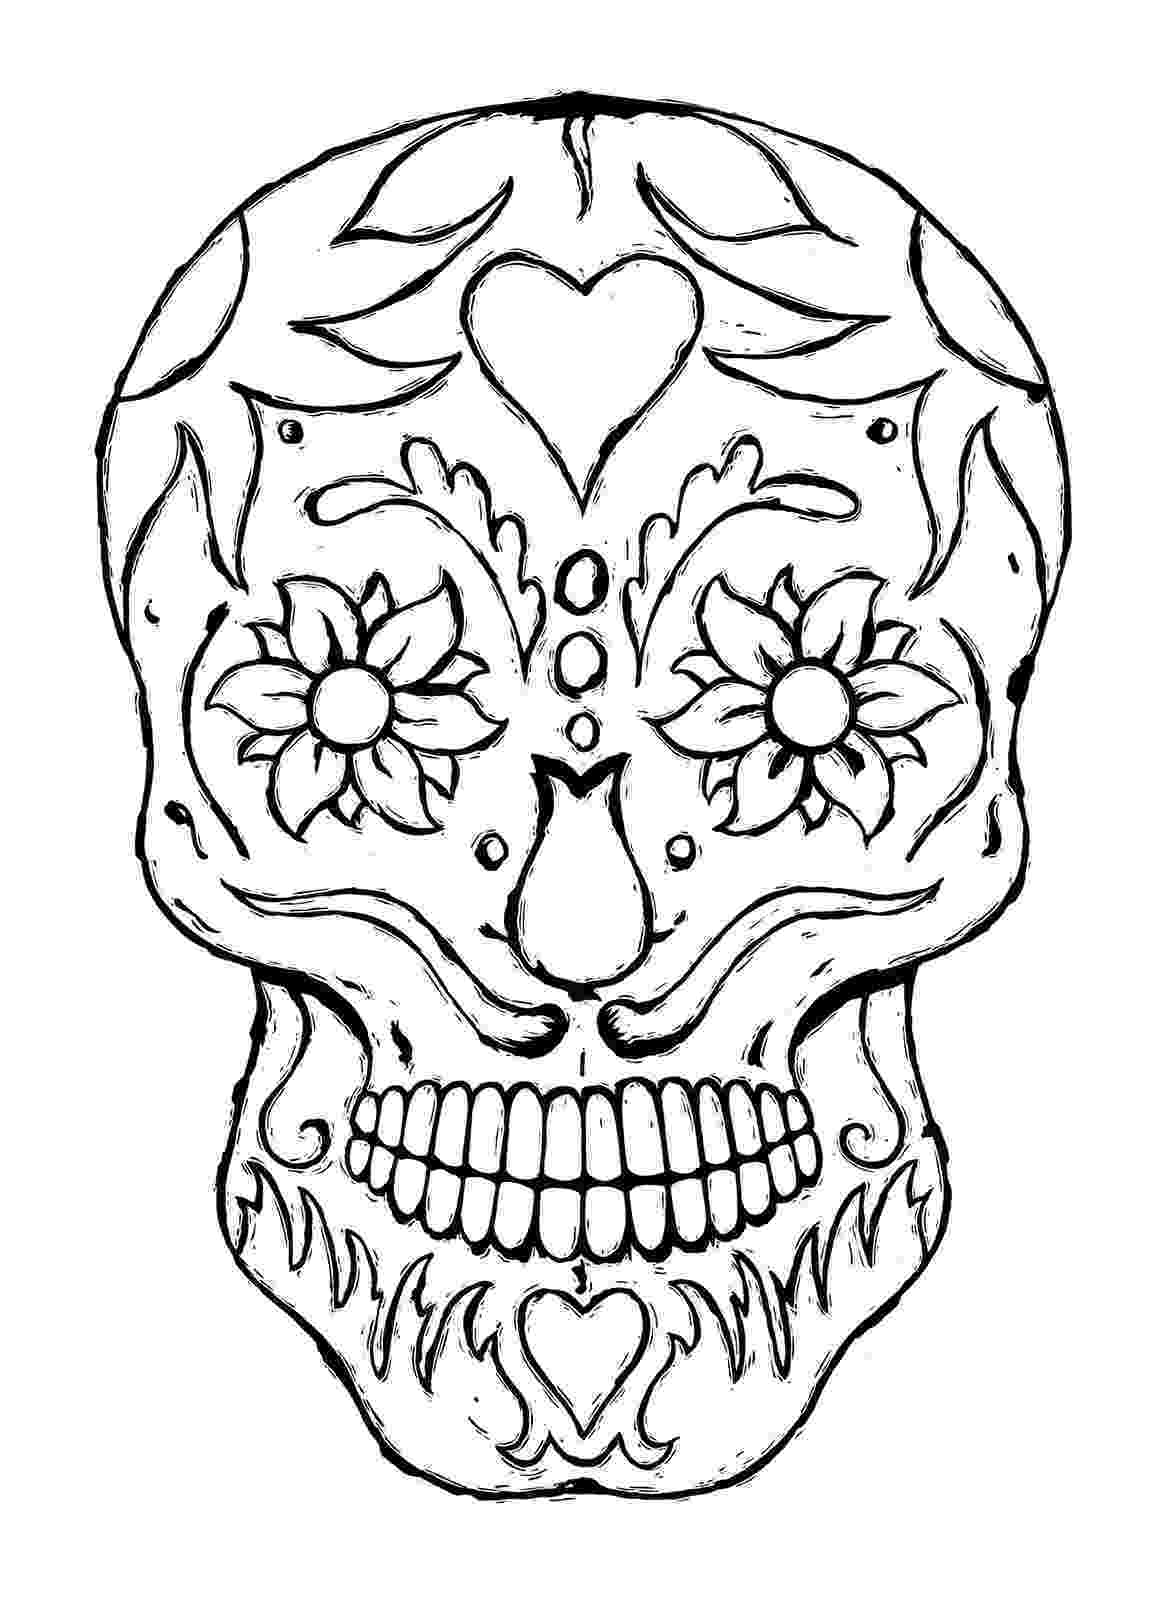 skulls coloring pages coloring pages skull free printable coloring pages coloring skulls pages